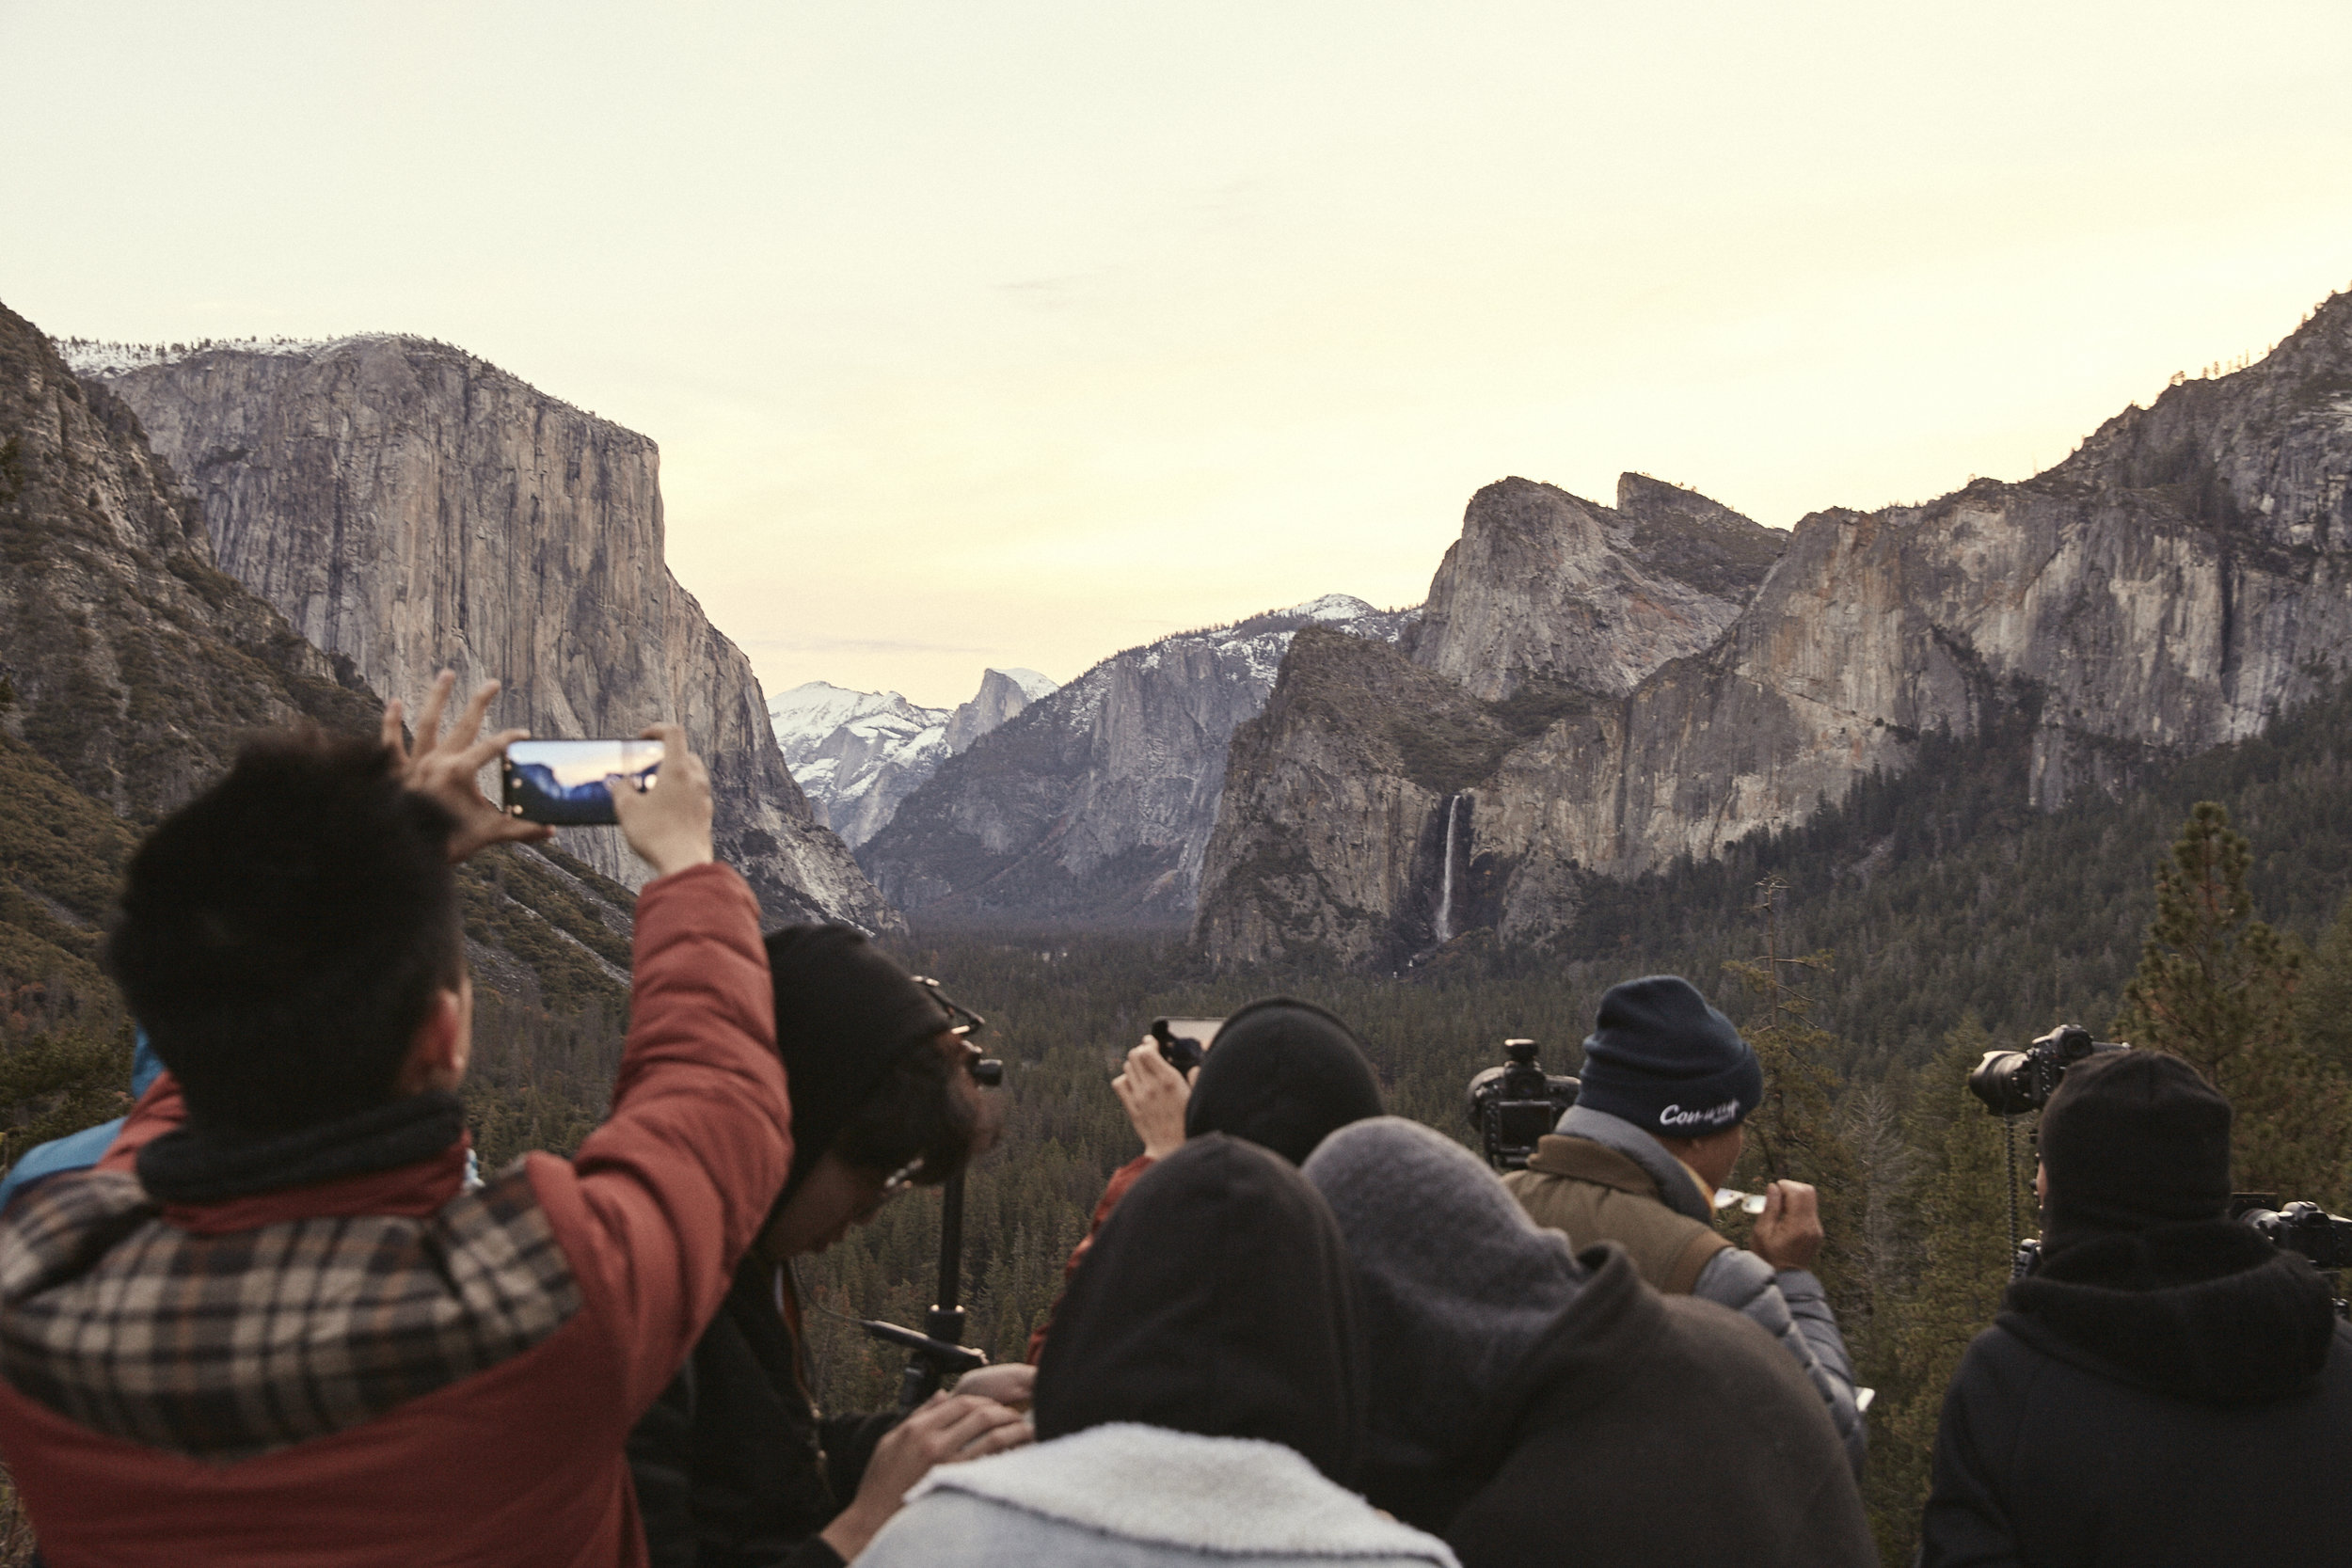 Photographers at Tunnel View in Yosemite National Park.